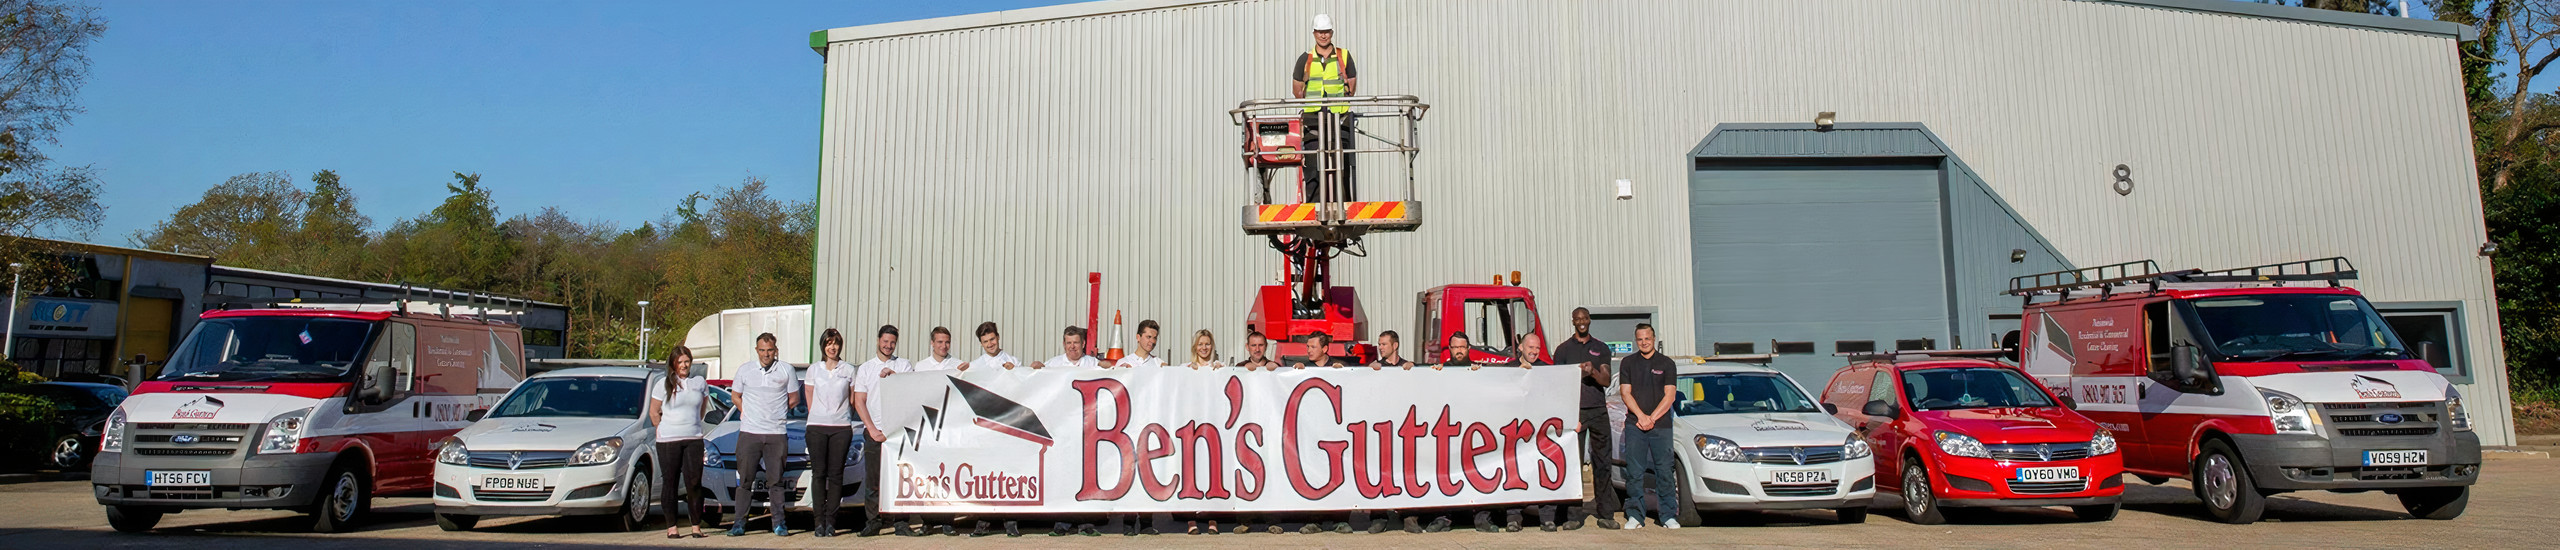 bens gutters Clacton-on-Sea